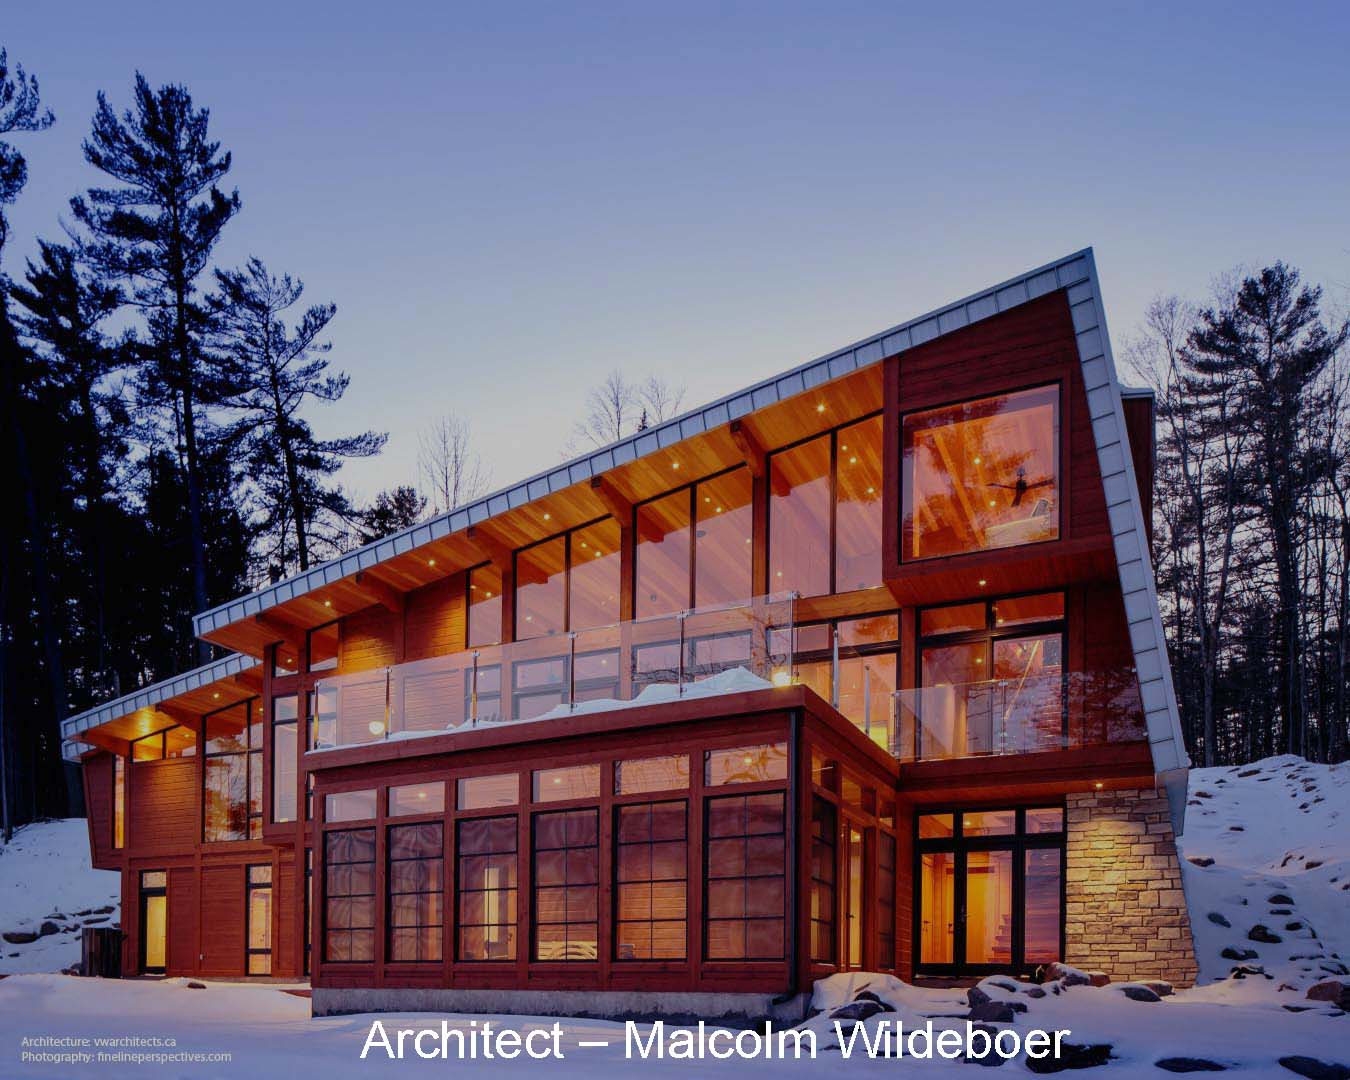 Architect – Malcolm Wildeboer